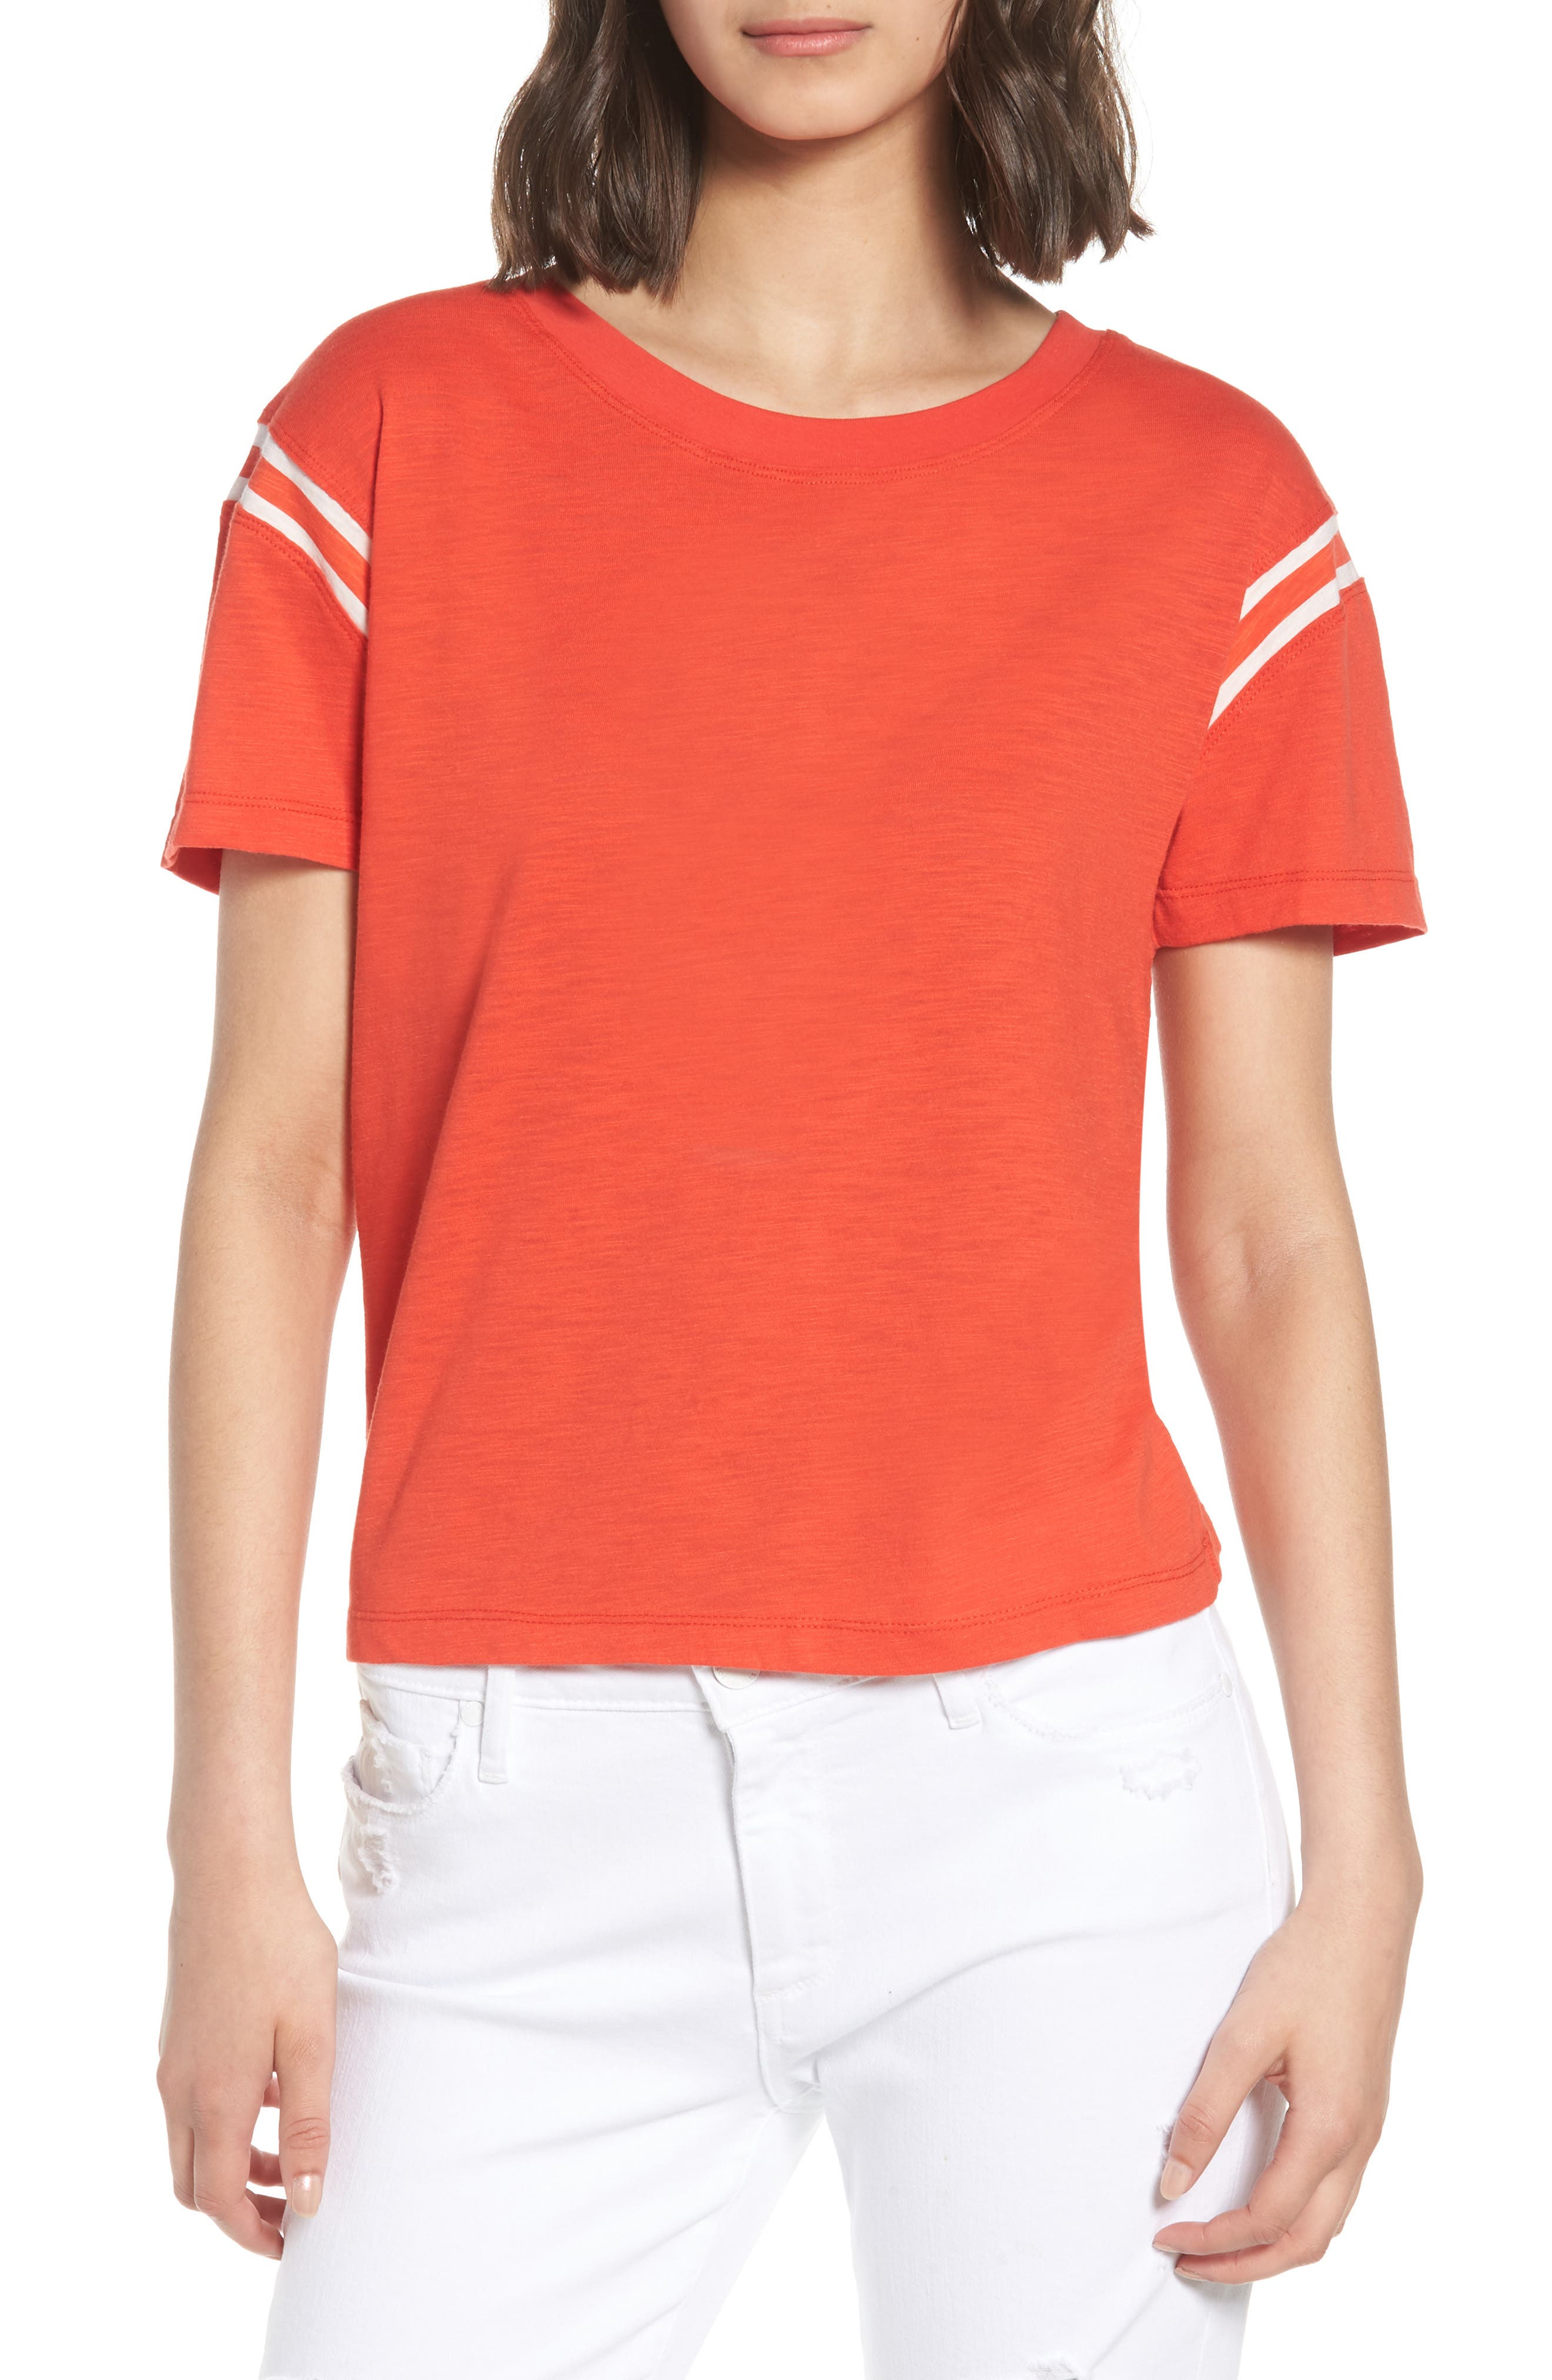 Football Tee,                             Main thumbnail 1, color,                             Candy Red